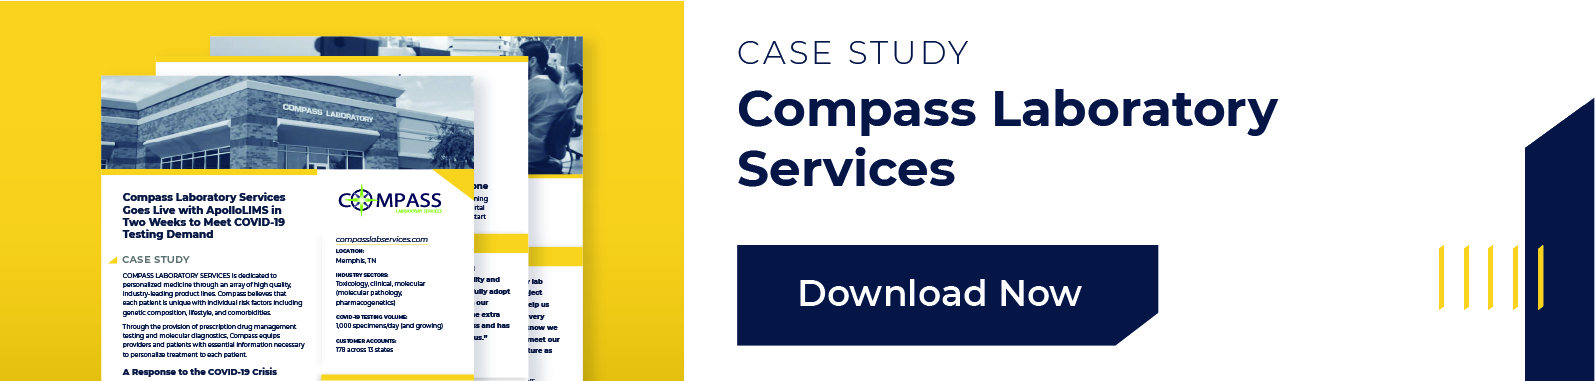 Compass laboratory services case study